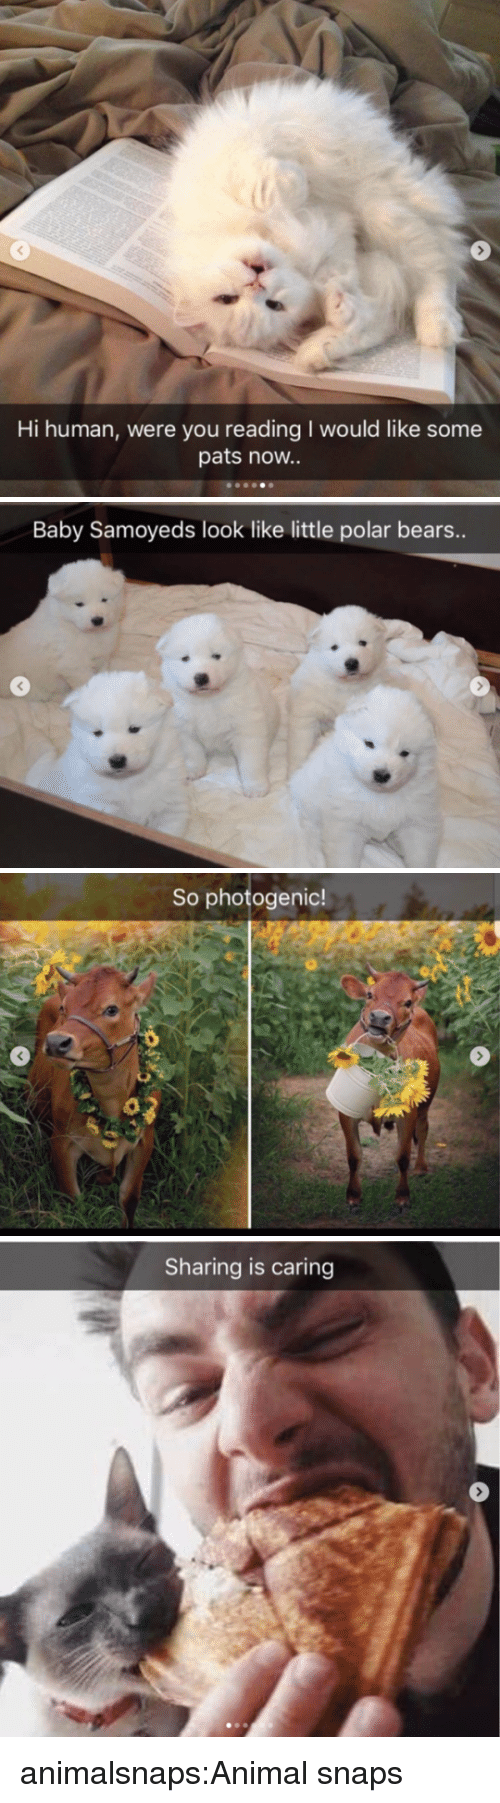 Target, Tumblr, and Animal: Hi human, were you reading I would like some  pats noW..   Baby Samoyeds look like little polar bears..   So photogenic!   Sharing is caring animalsnaps:Animal snaps